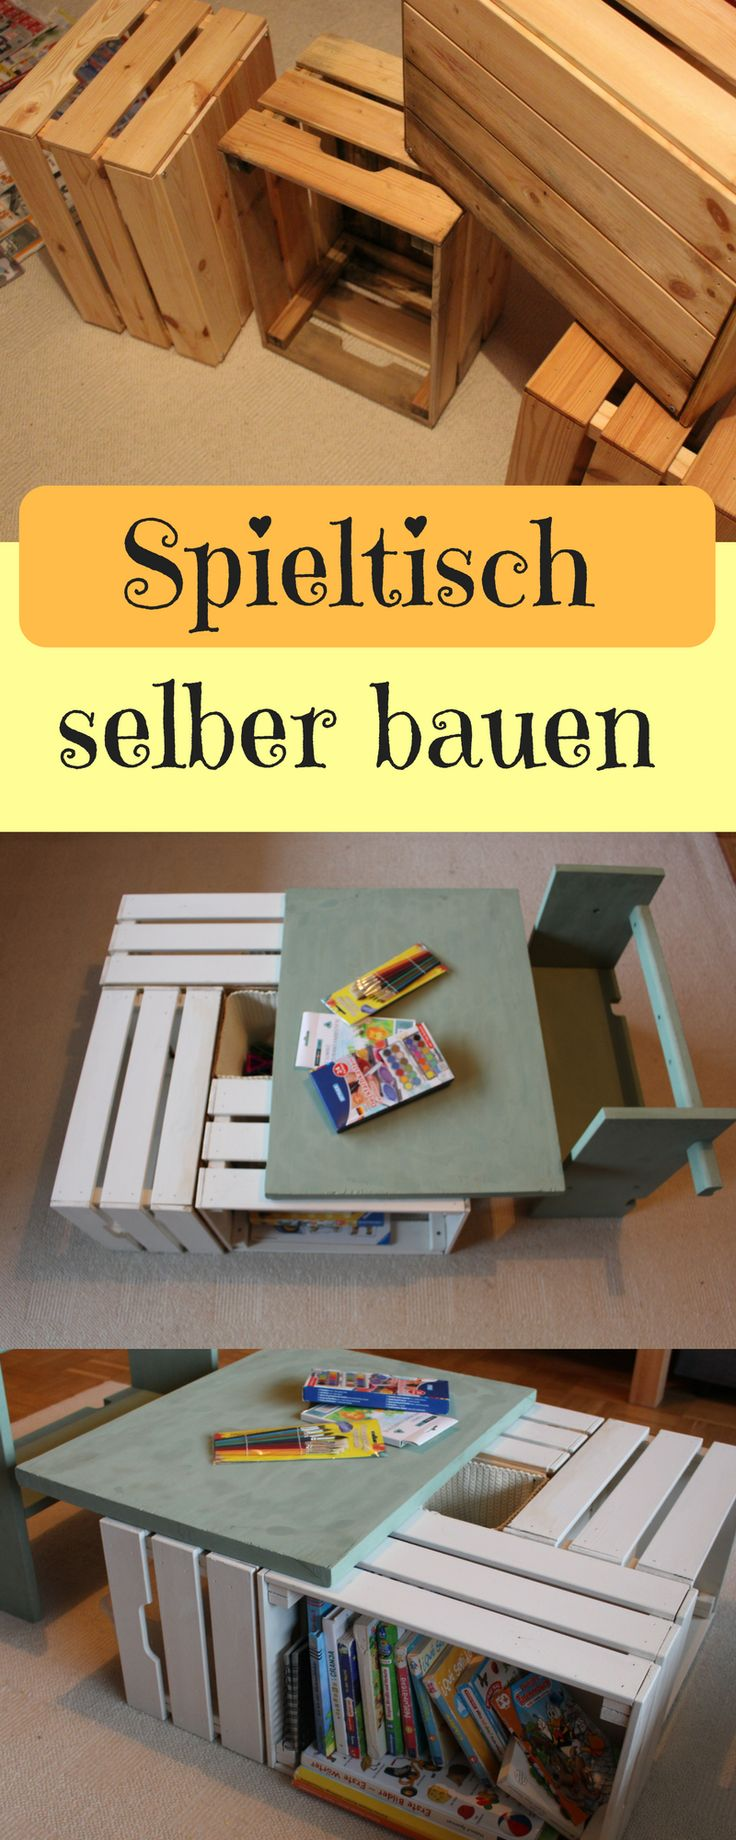 die besten 25 brettspiel selber machen ideen auf pinterest brettspiele f r kinder coole. Black Bedroom Furniture Sets. Home Design Ideas